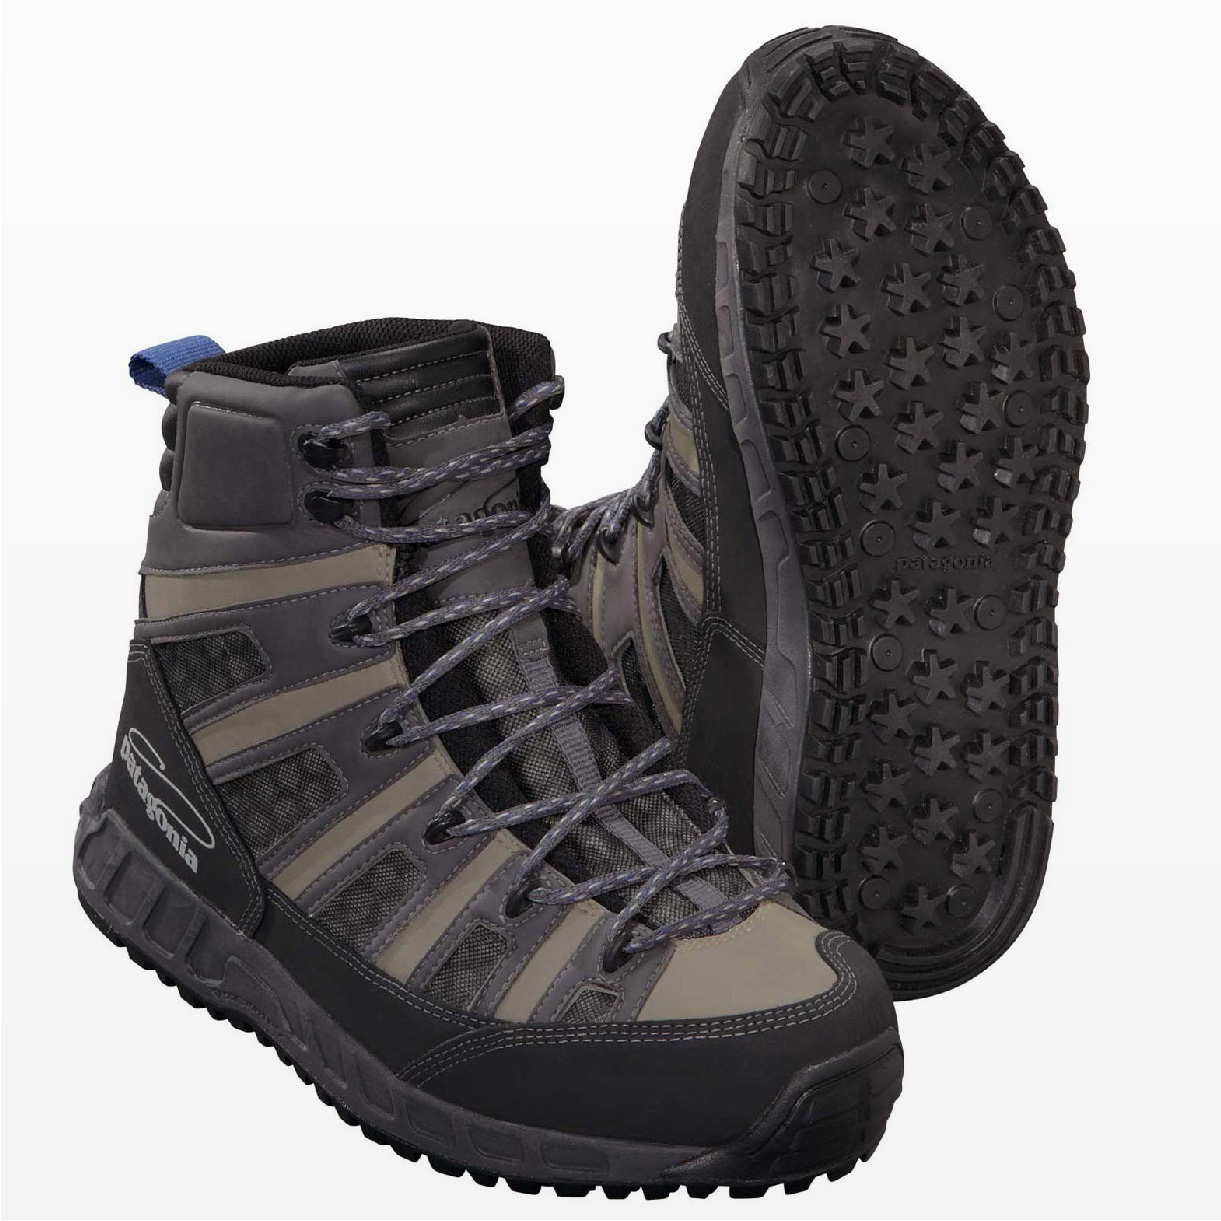 3Patagonia-Ultralight-Wading-Boots-Sticky